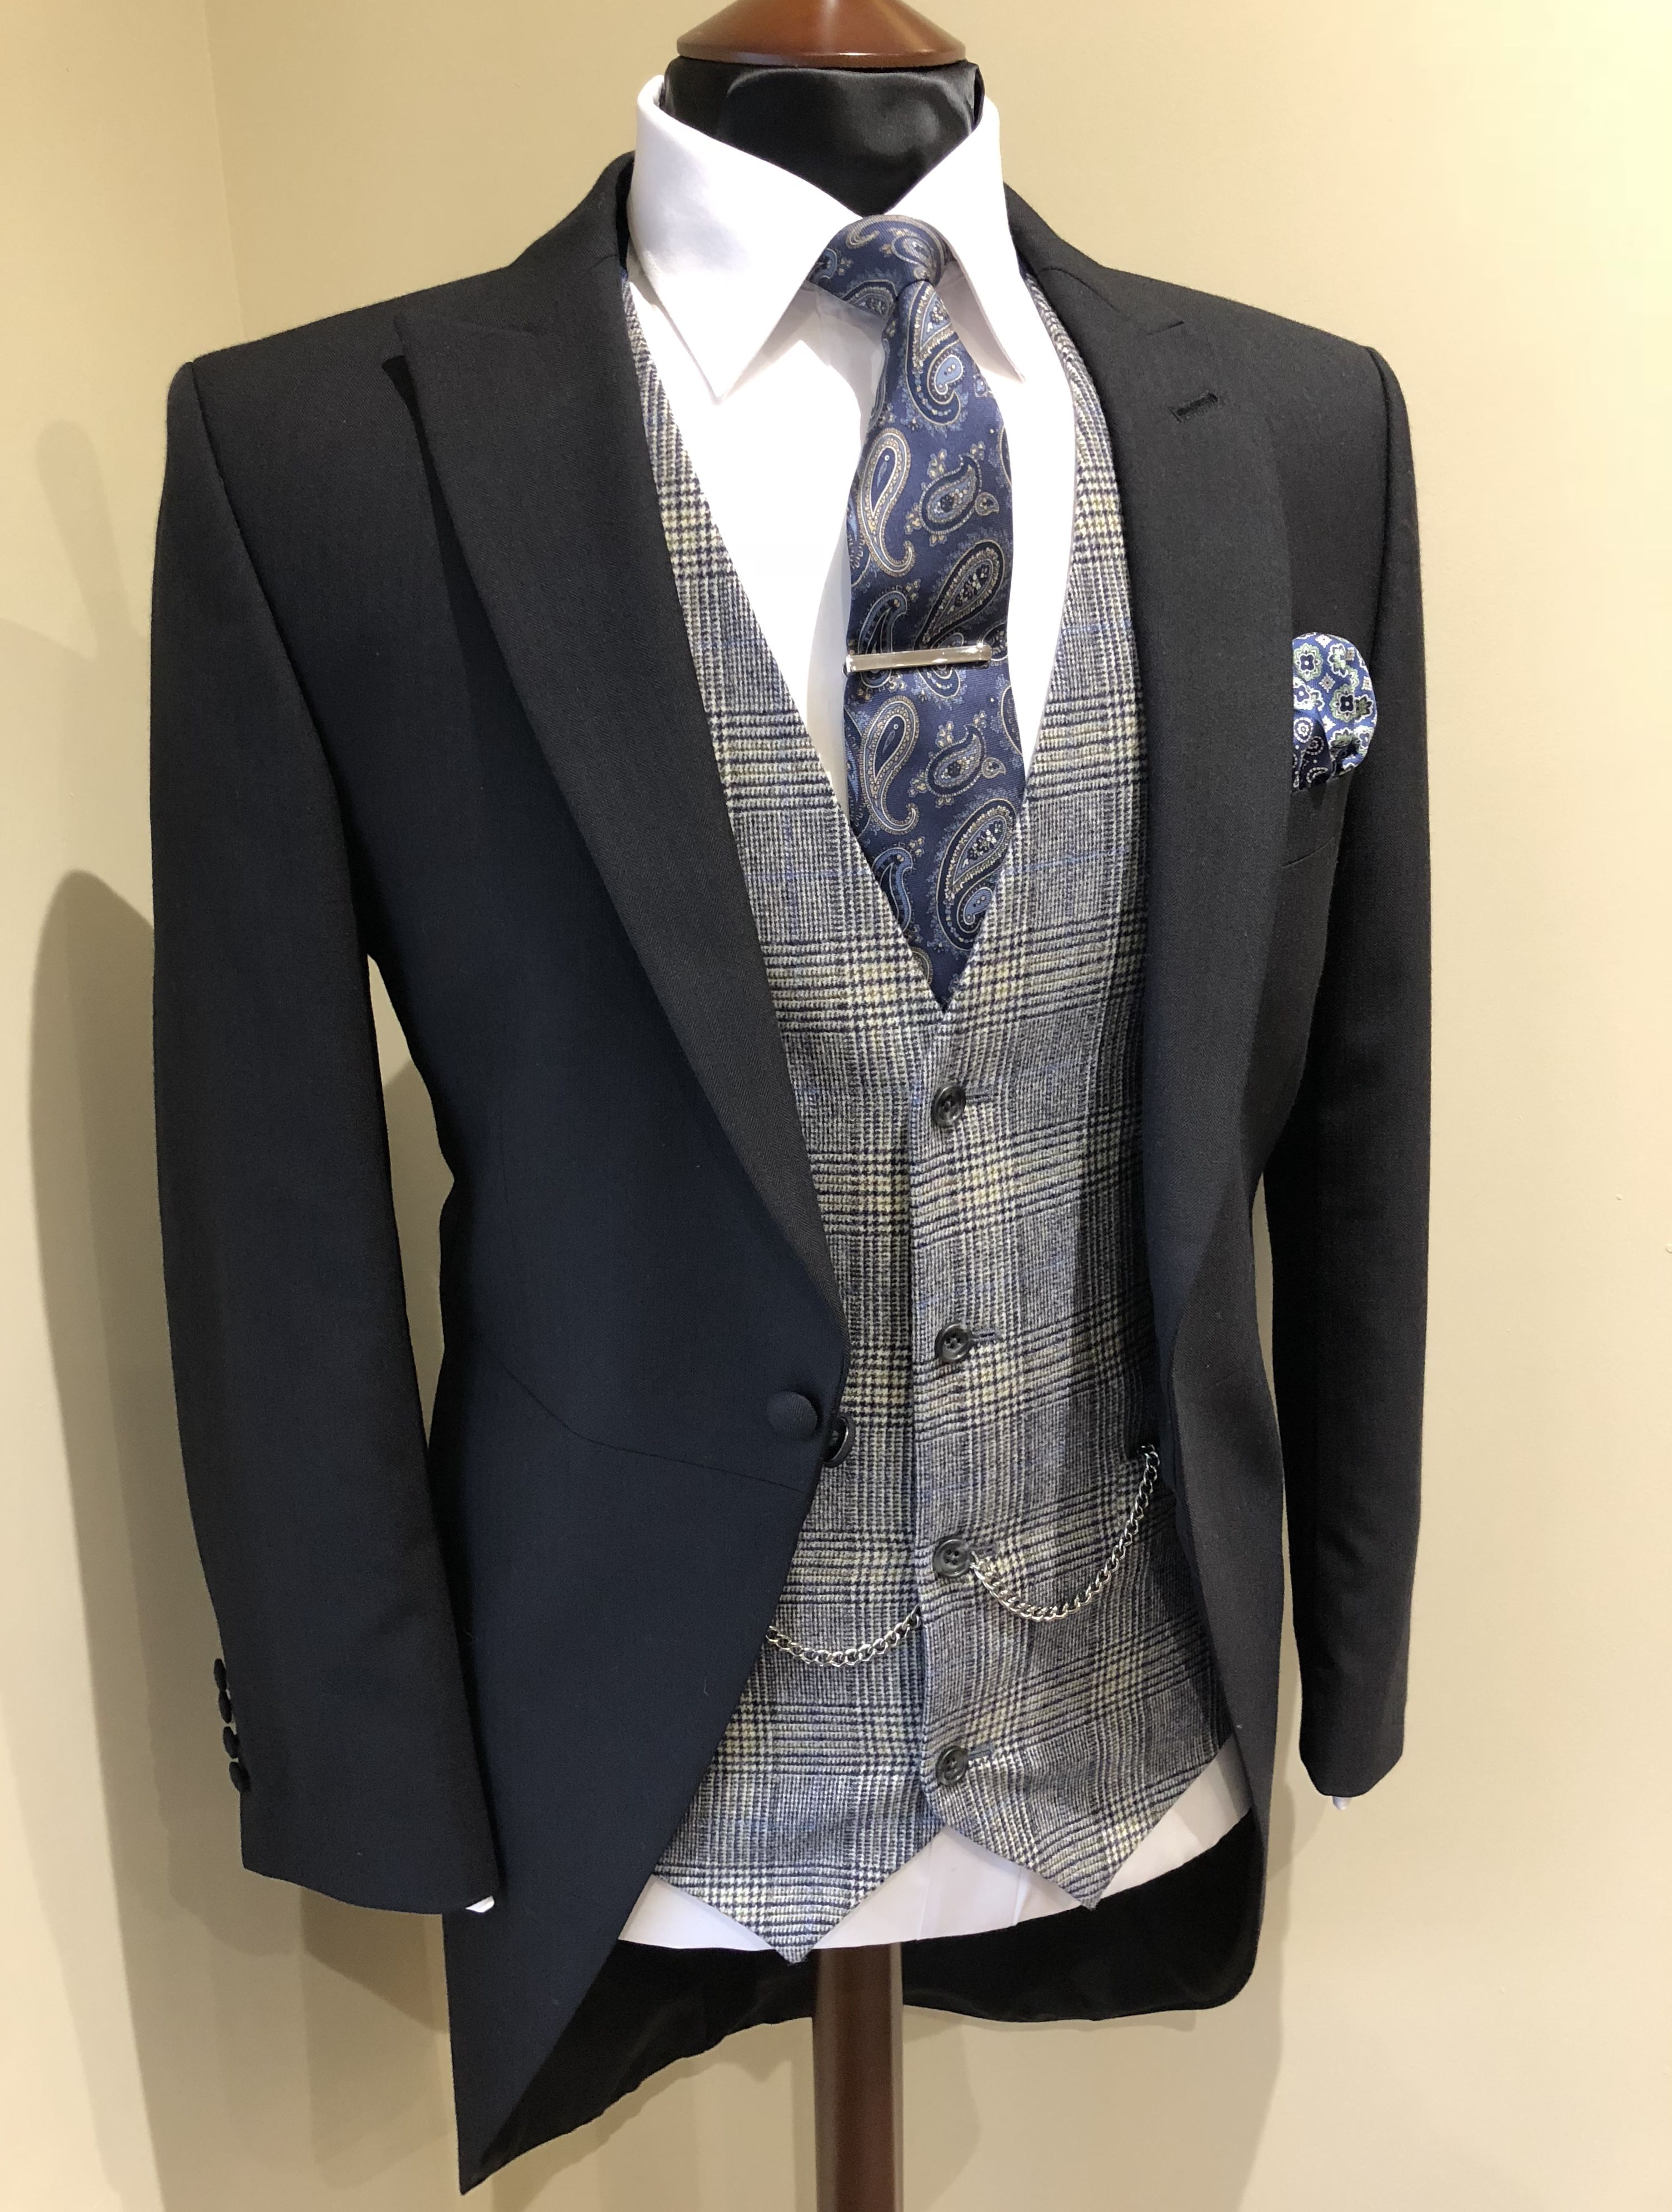 Black morning suit with flannel check waistcoat & paisley